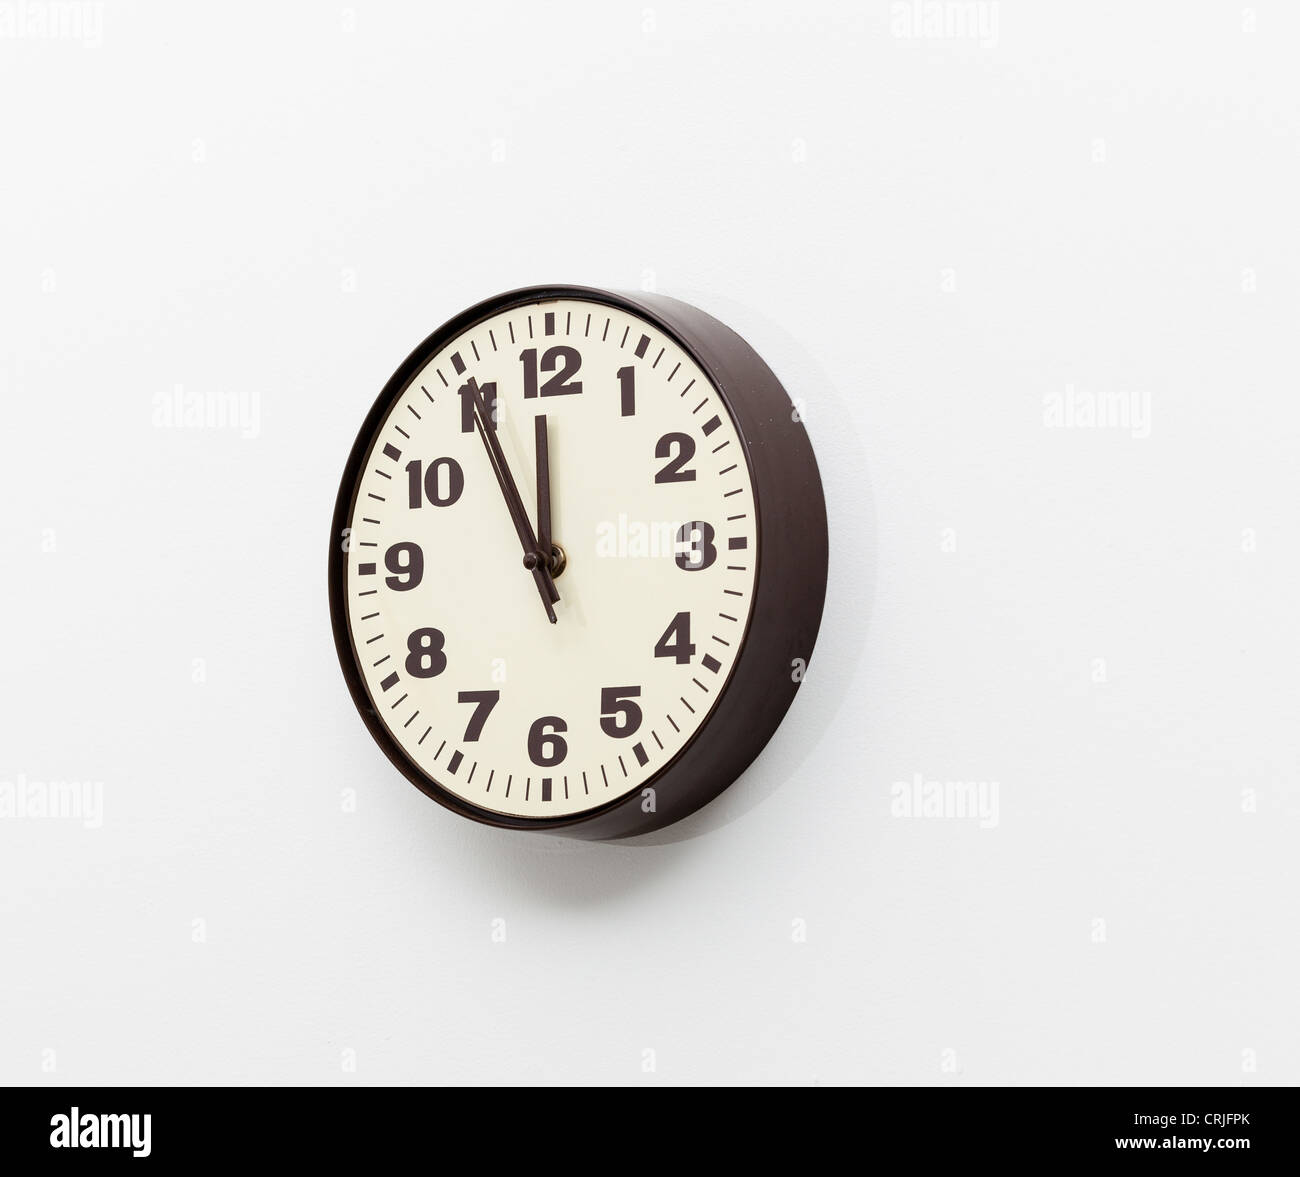 Wall clock showing five minutes to 12 o'clock - Stock Image